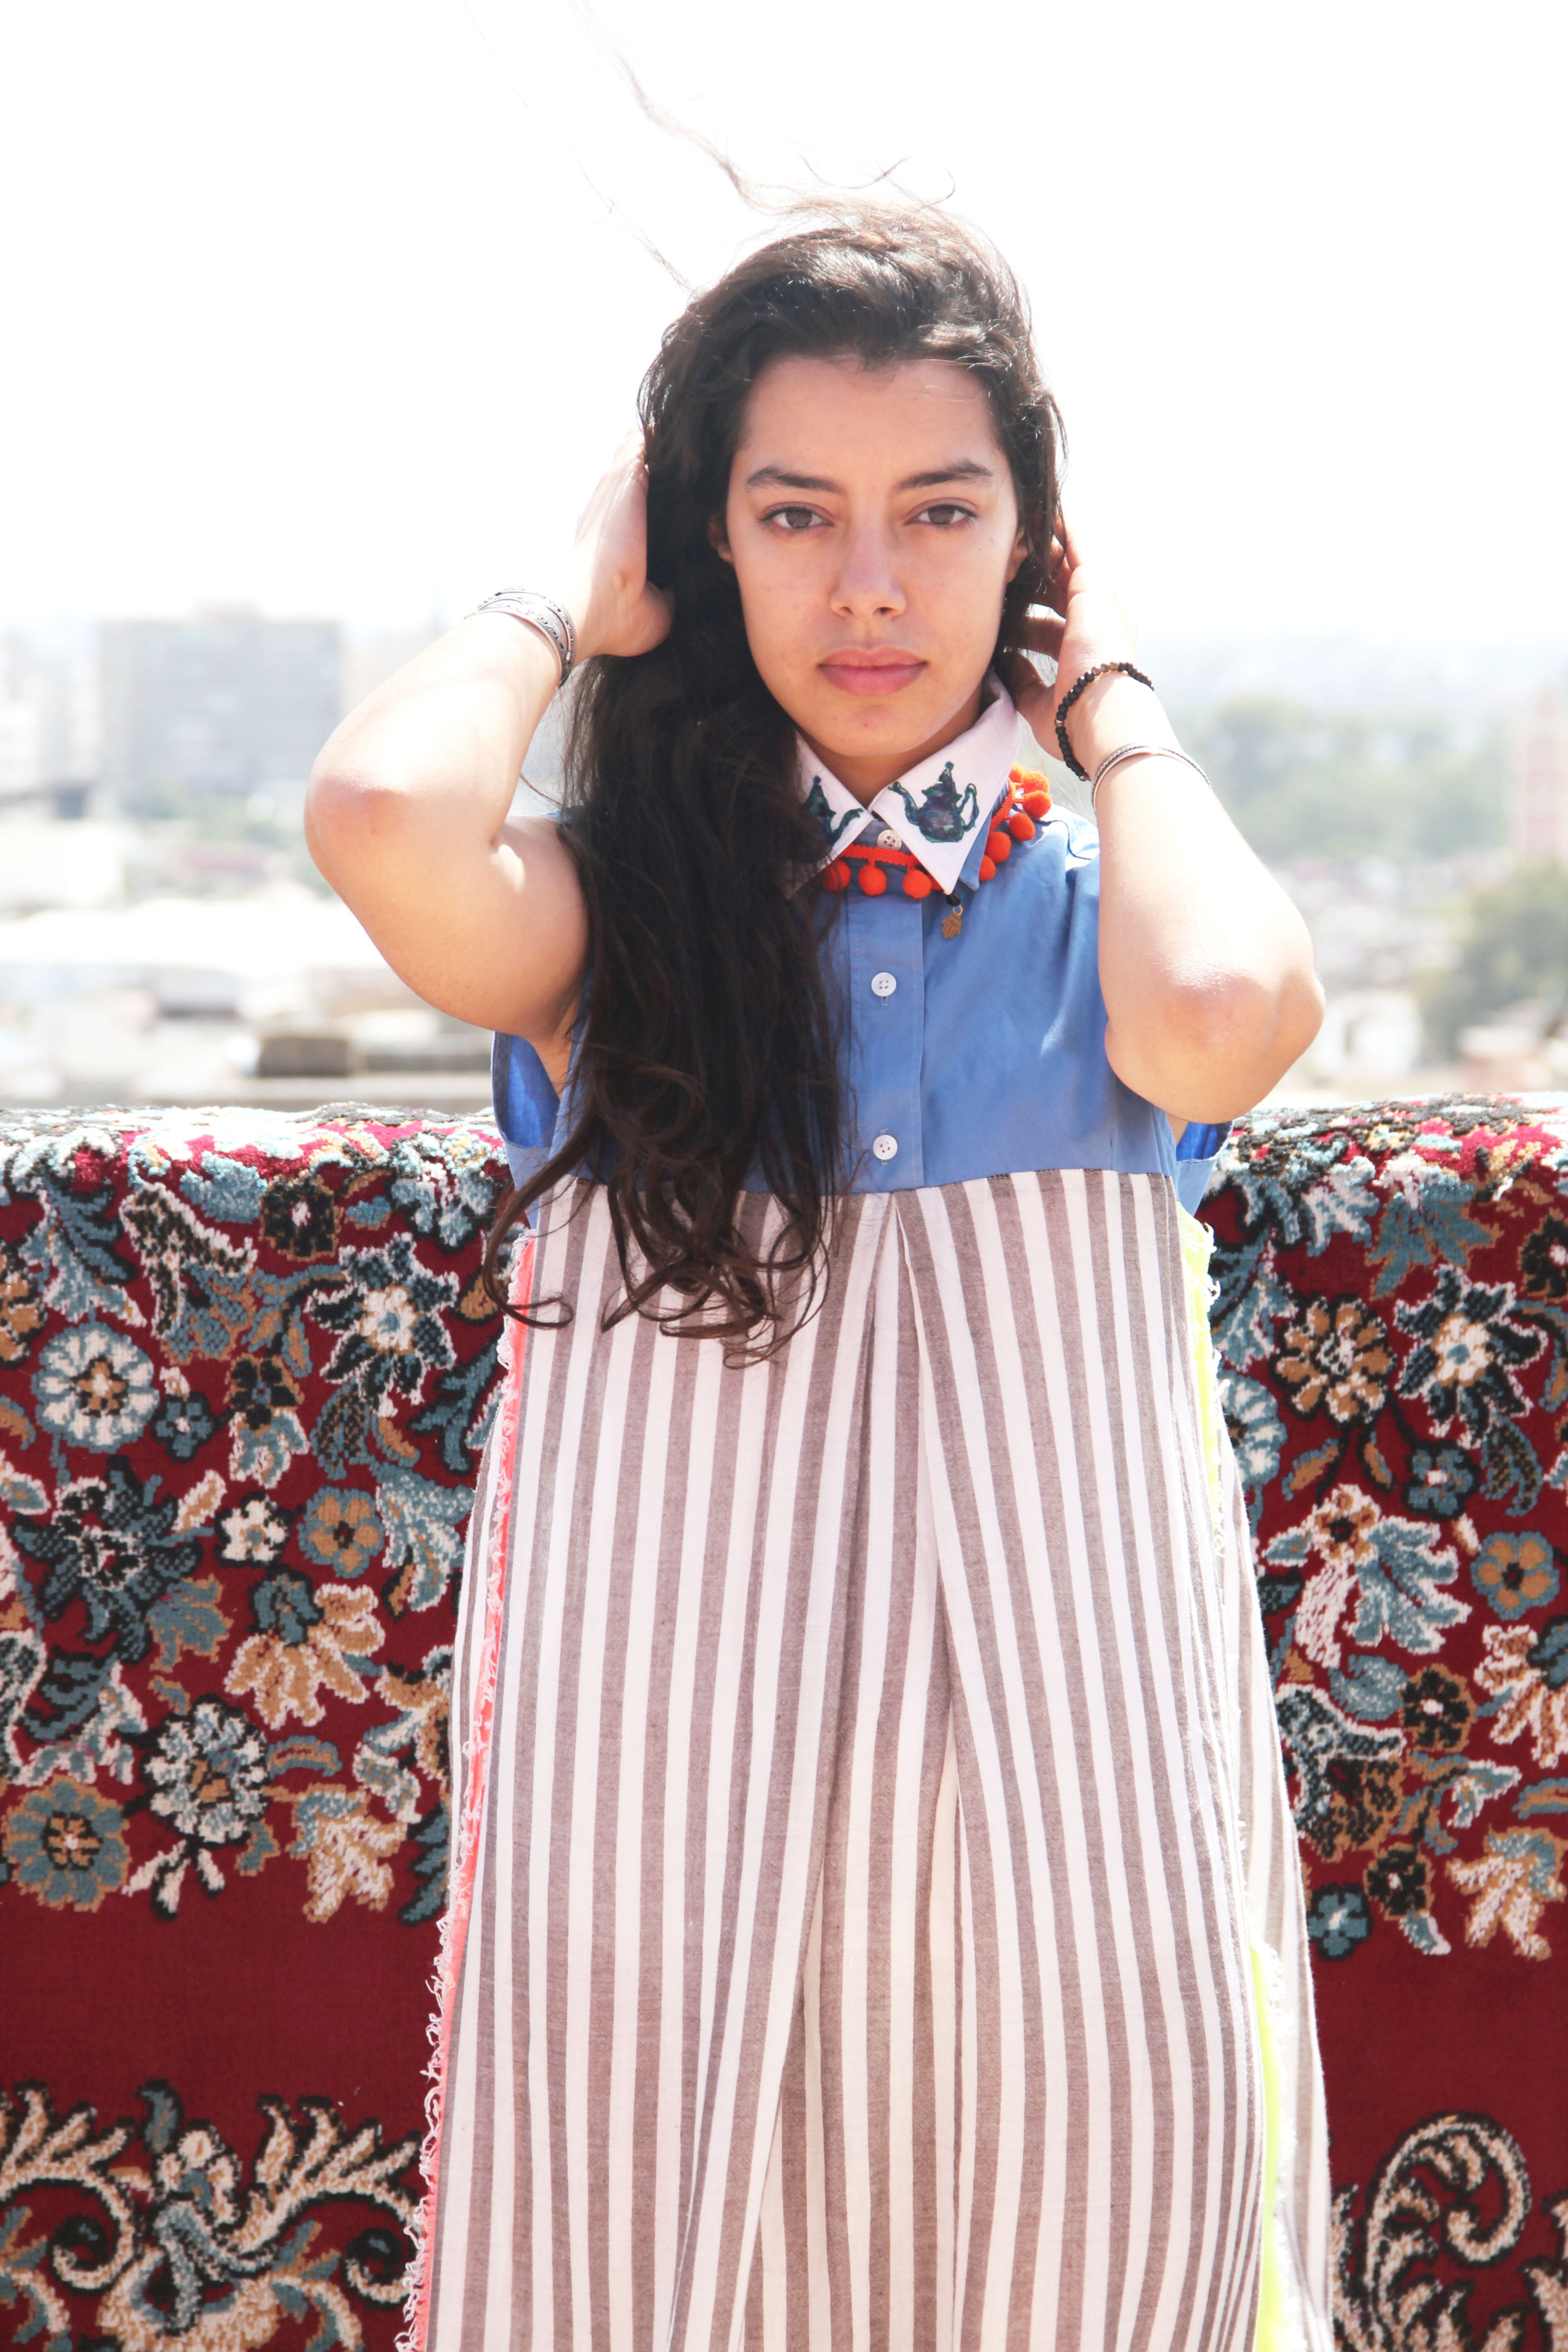 Ghitta Laskrouif, Vintage & Slow Fashion